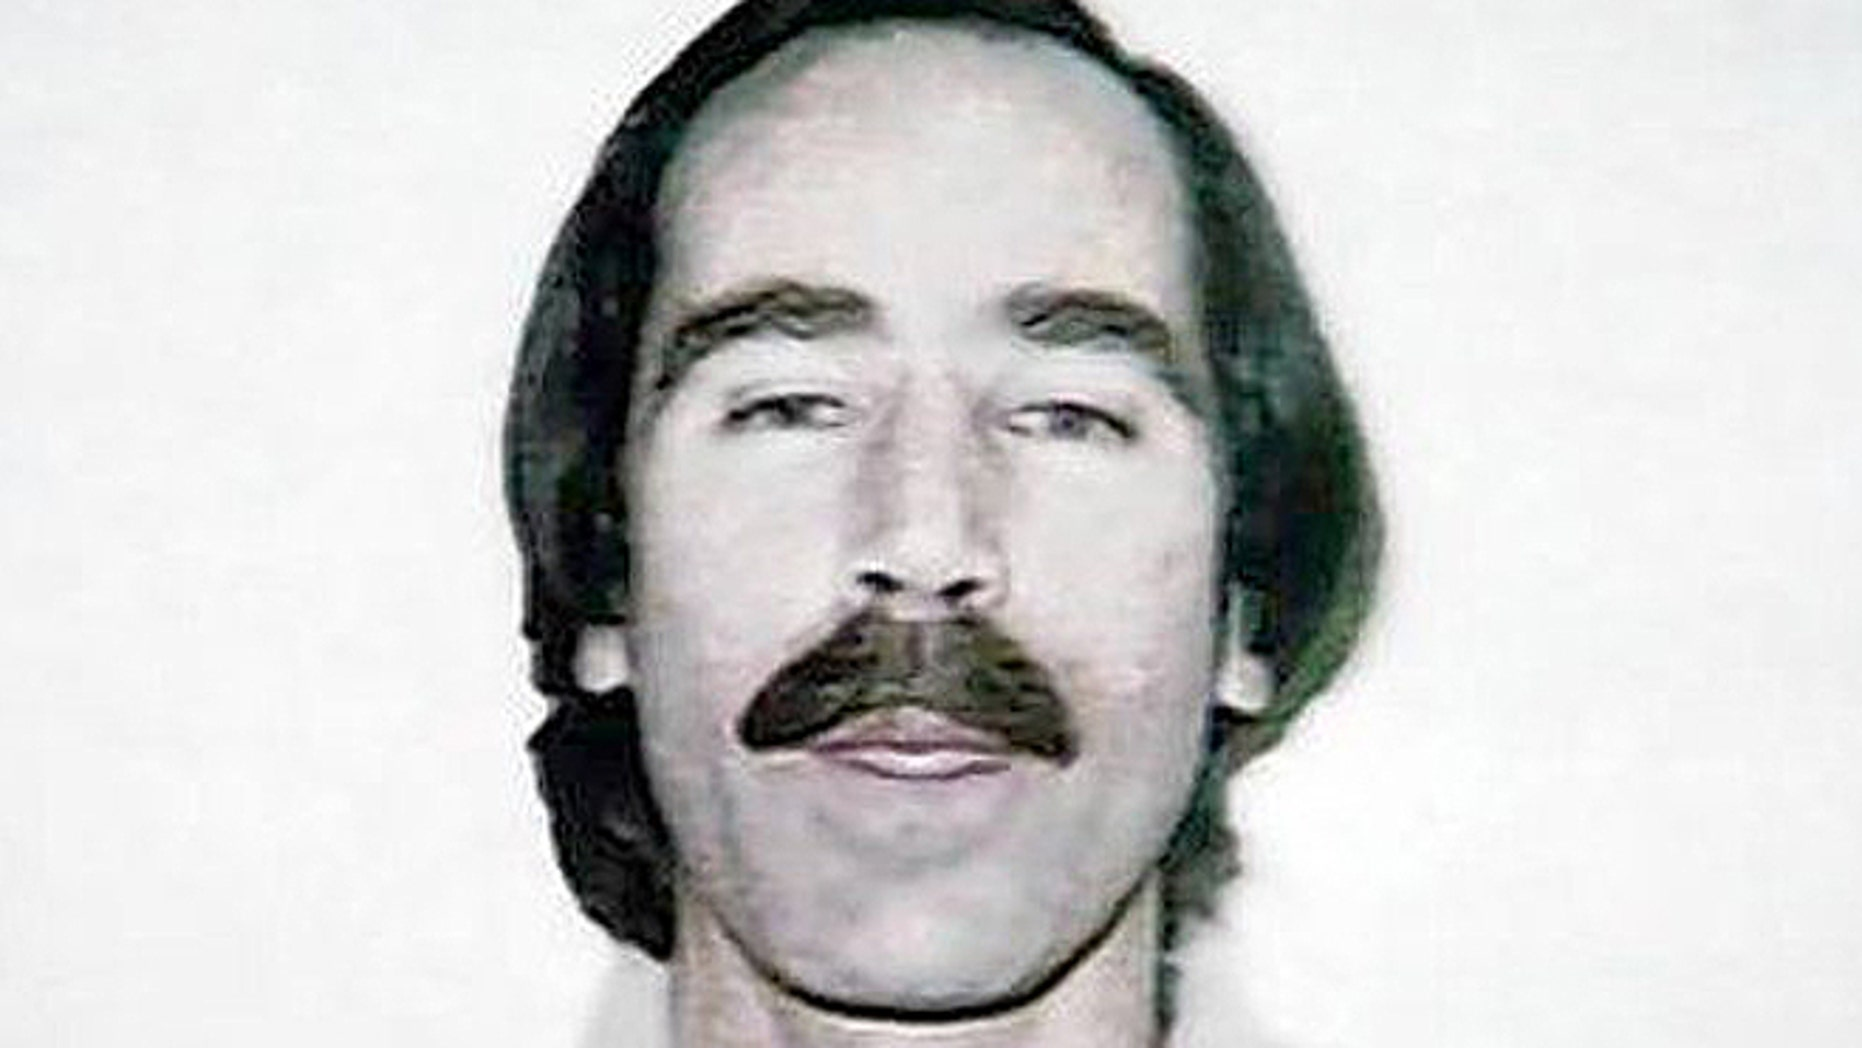 Christopher Hubbart, a sexually violent predator dubbed the 'Pillowcase Rapist,' has spent nearly two decades in mental institutions after admitting to sexually assaulting more than three dozen women throughout California between 1971 and 1982.